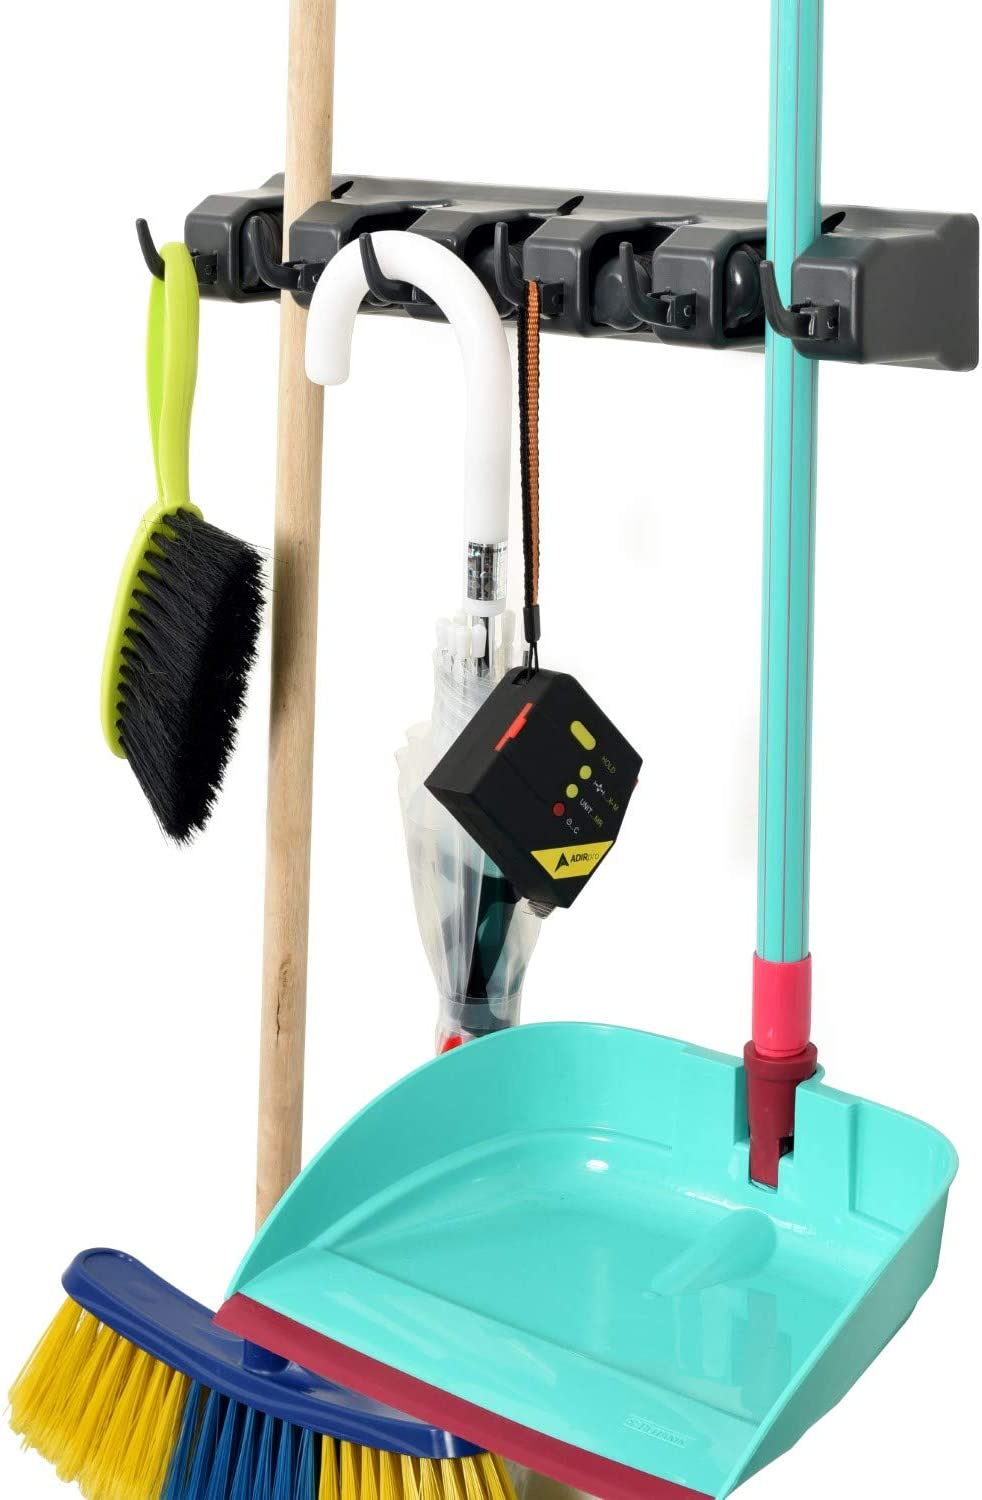 Alpine Industries Mop and Broom Holder 5 Slots 6 Hooks – Durable, Wall Mounted Cleaning Tools Rack Hanger for Home Kitchen Garden Garage Basement Use